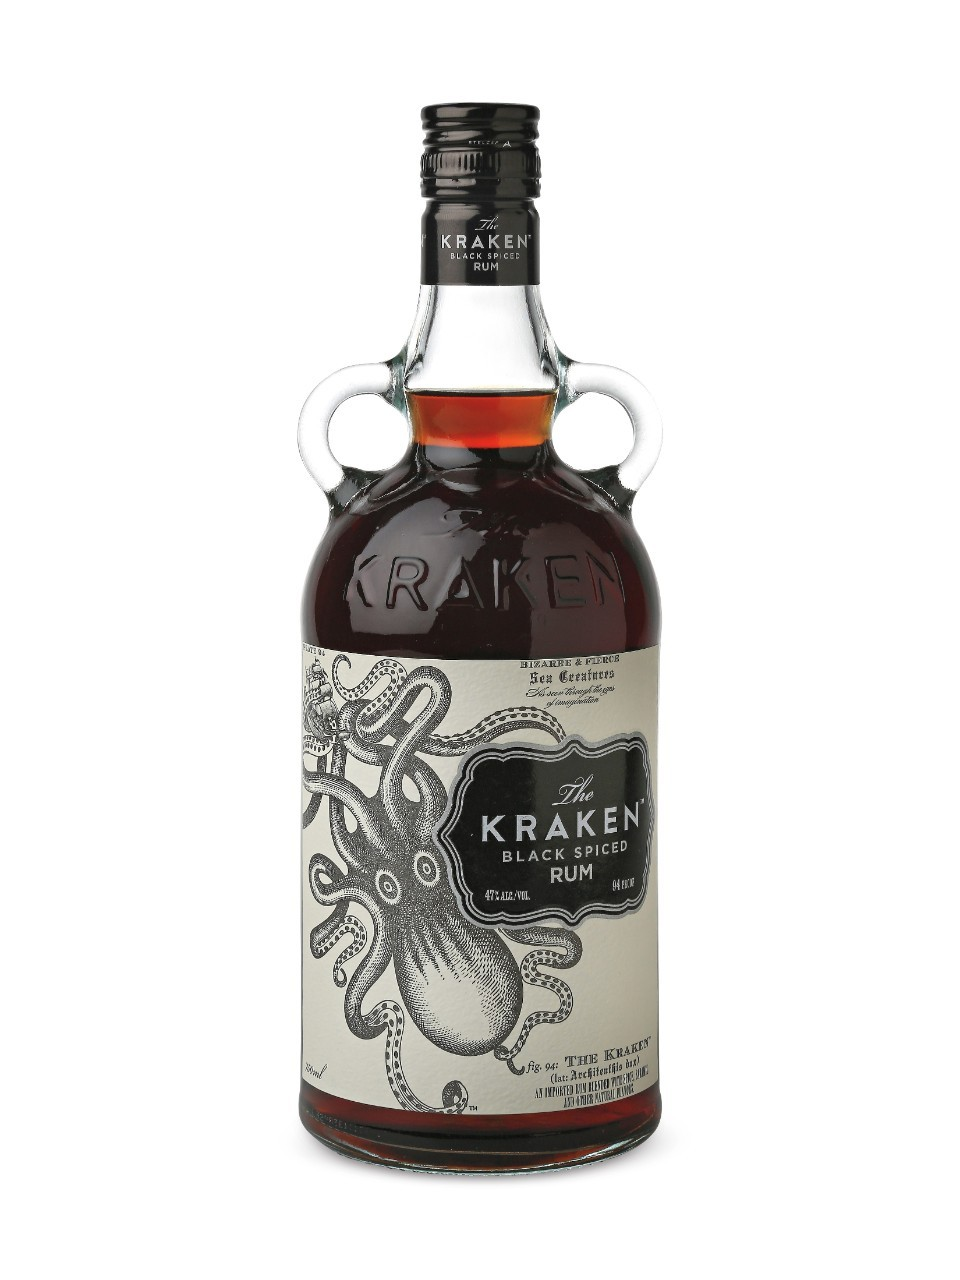 The Kraken Black Spiced Rum | LCBO